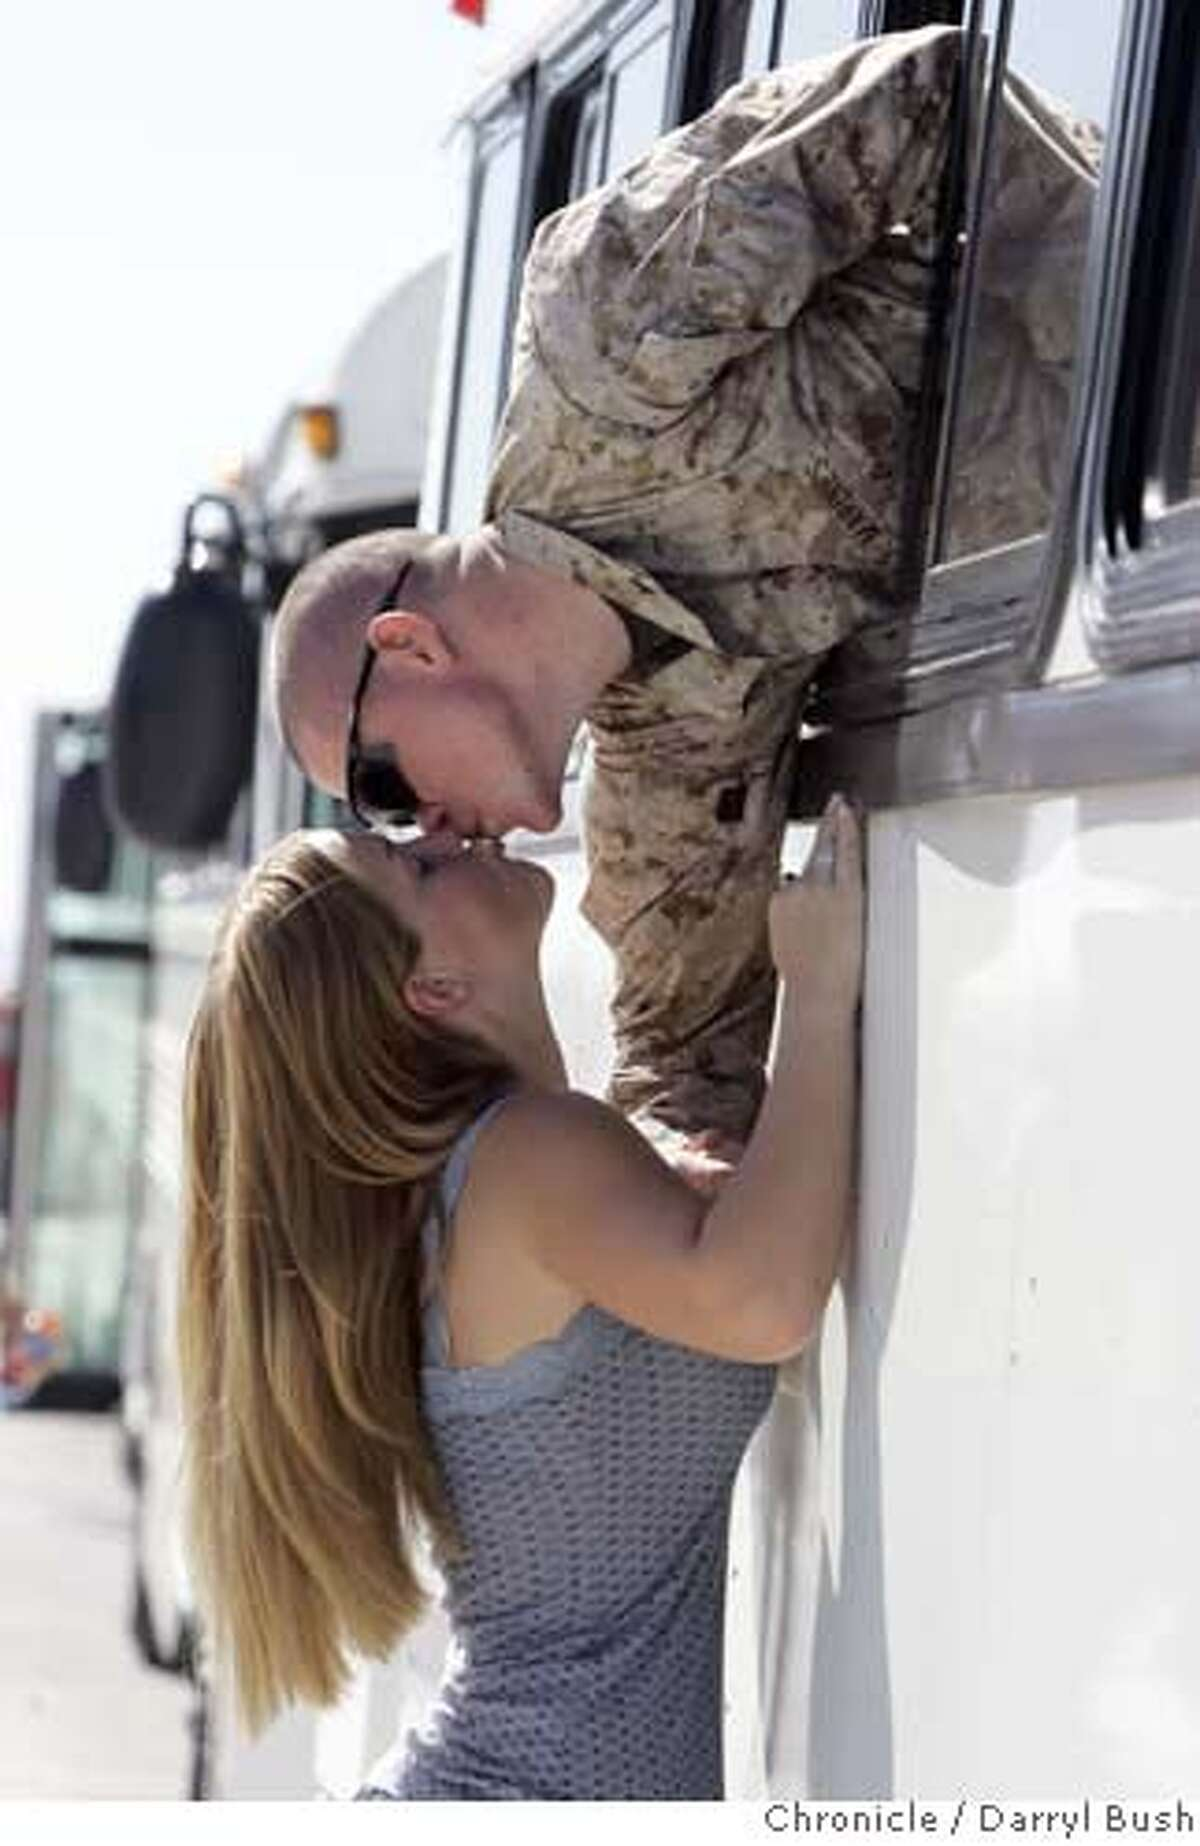 Kayla Judge, 17, kisses goodbye her boyfriend, Lance Corporal Shawn Patten, 19, both from Moreno Valley, CA., as he and other Marines from the 3rd Battalion 4th Marine Regiment, board buses that begin their deployment to Iraq Thursday morning, at the Marine Corps Air Ground Combat Center Twentynine Palms, near Twentynine Palms, CA on Thursday, August 31, 2006. 8/31/06 Darryl Bush / The Chronicle ** Kayla Judge, Shawn Patten (cq)